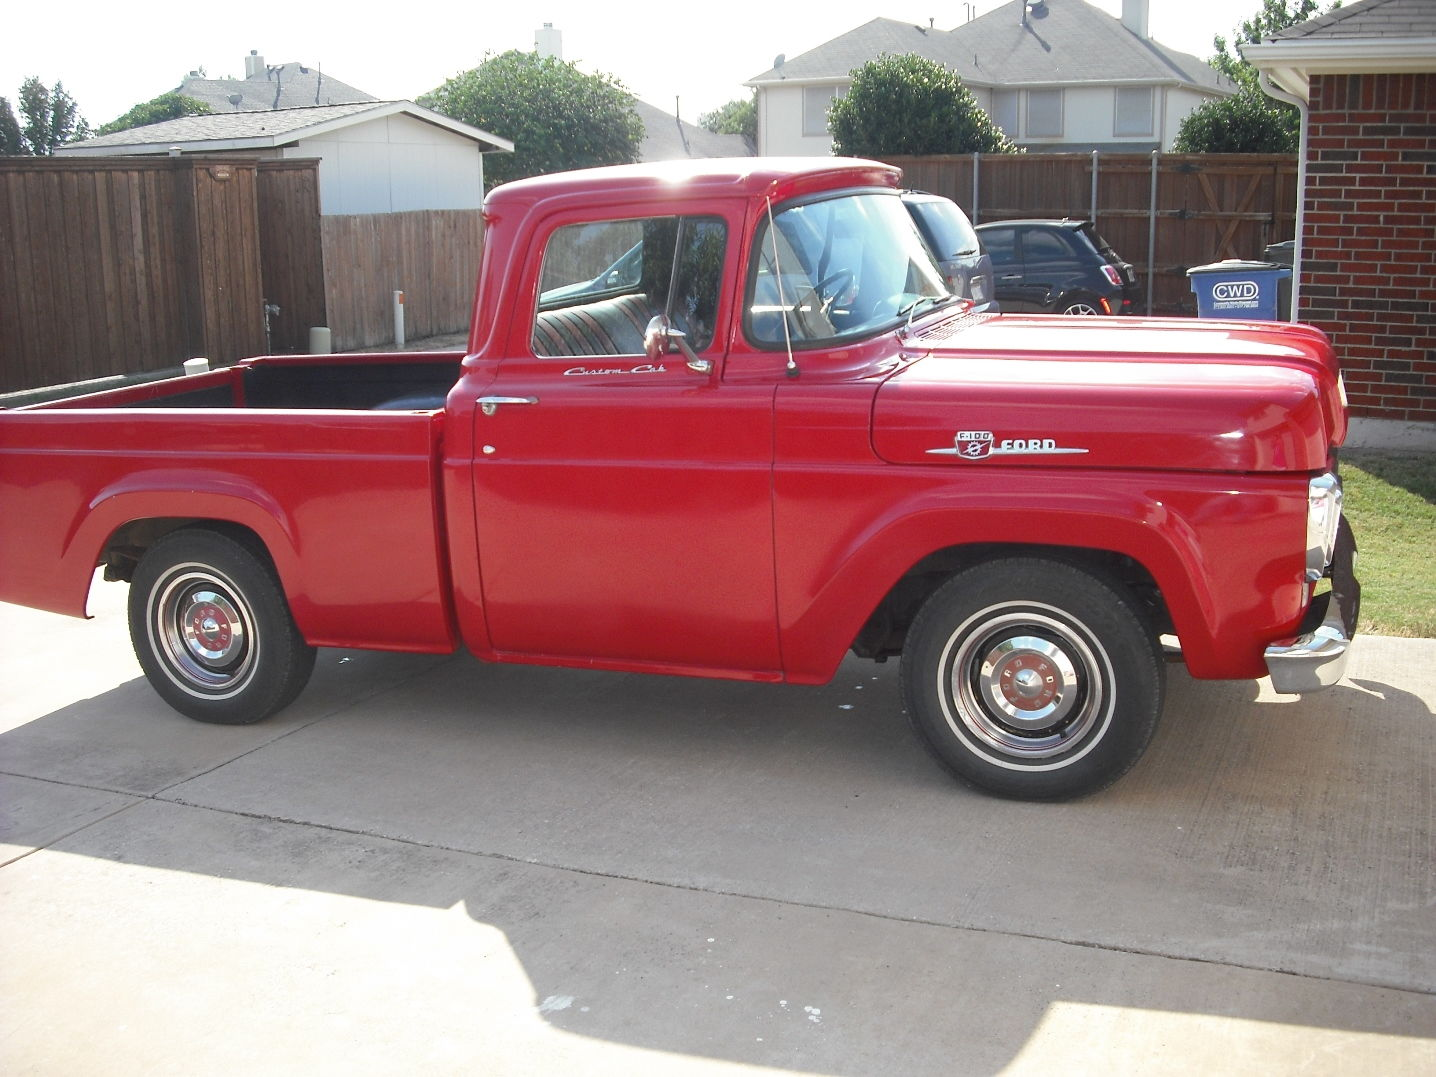 2950 Diesel 1982 Chevrolet Luv Diesel Pickup together with 1955 CHEVROLET 5100 NAPCO 4X4 PICKUP 196161 also 239957486372304693 likewise 2004 Chevy Duramax Lb7 V1 1 Fs17 likewise 0706st 1936 Ford Pickup. on old truck chevy pickup